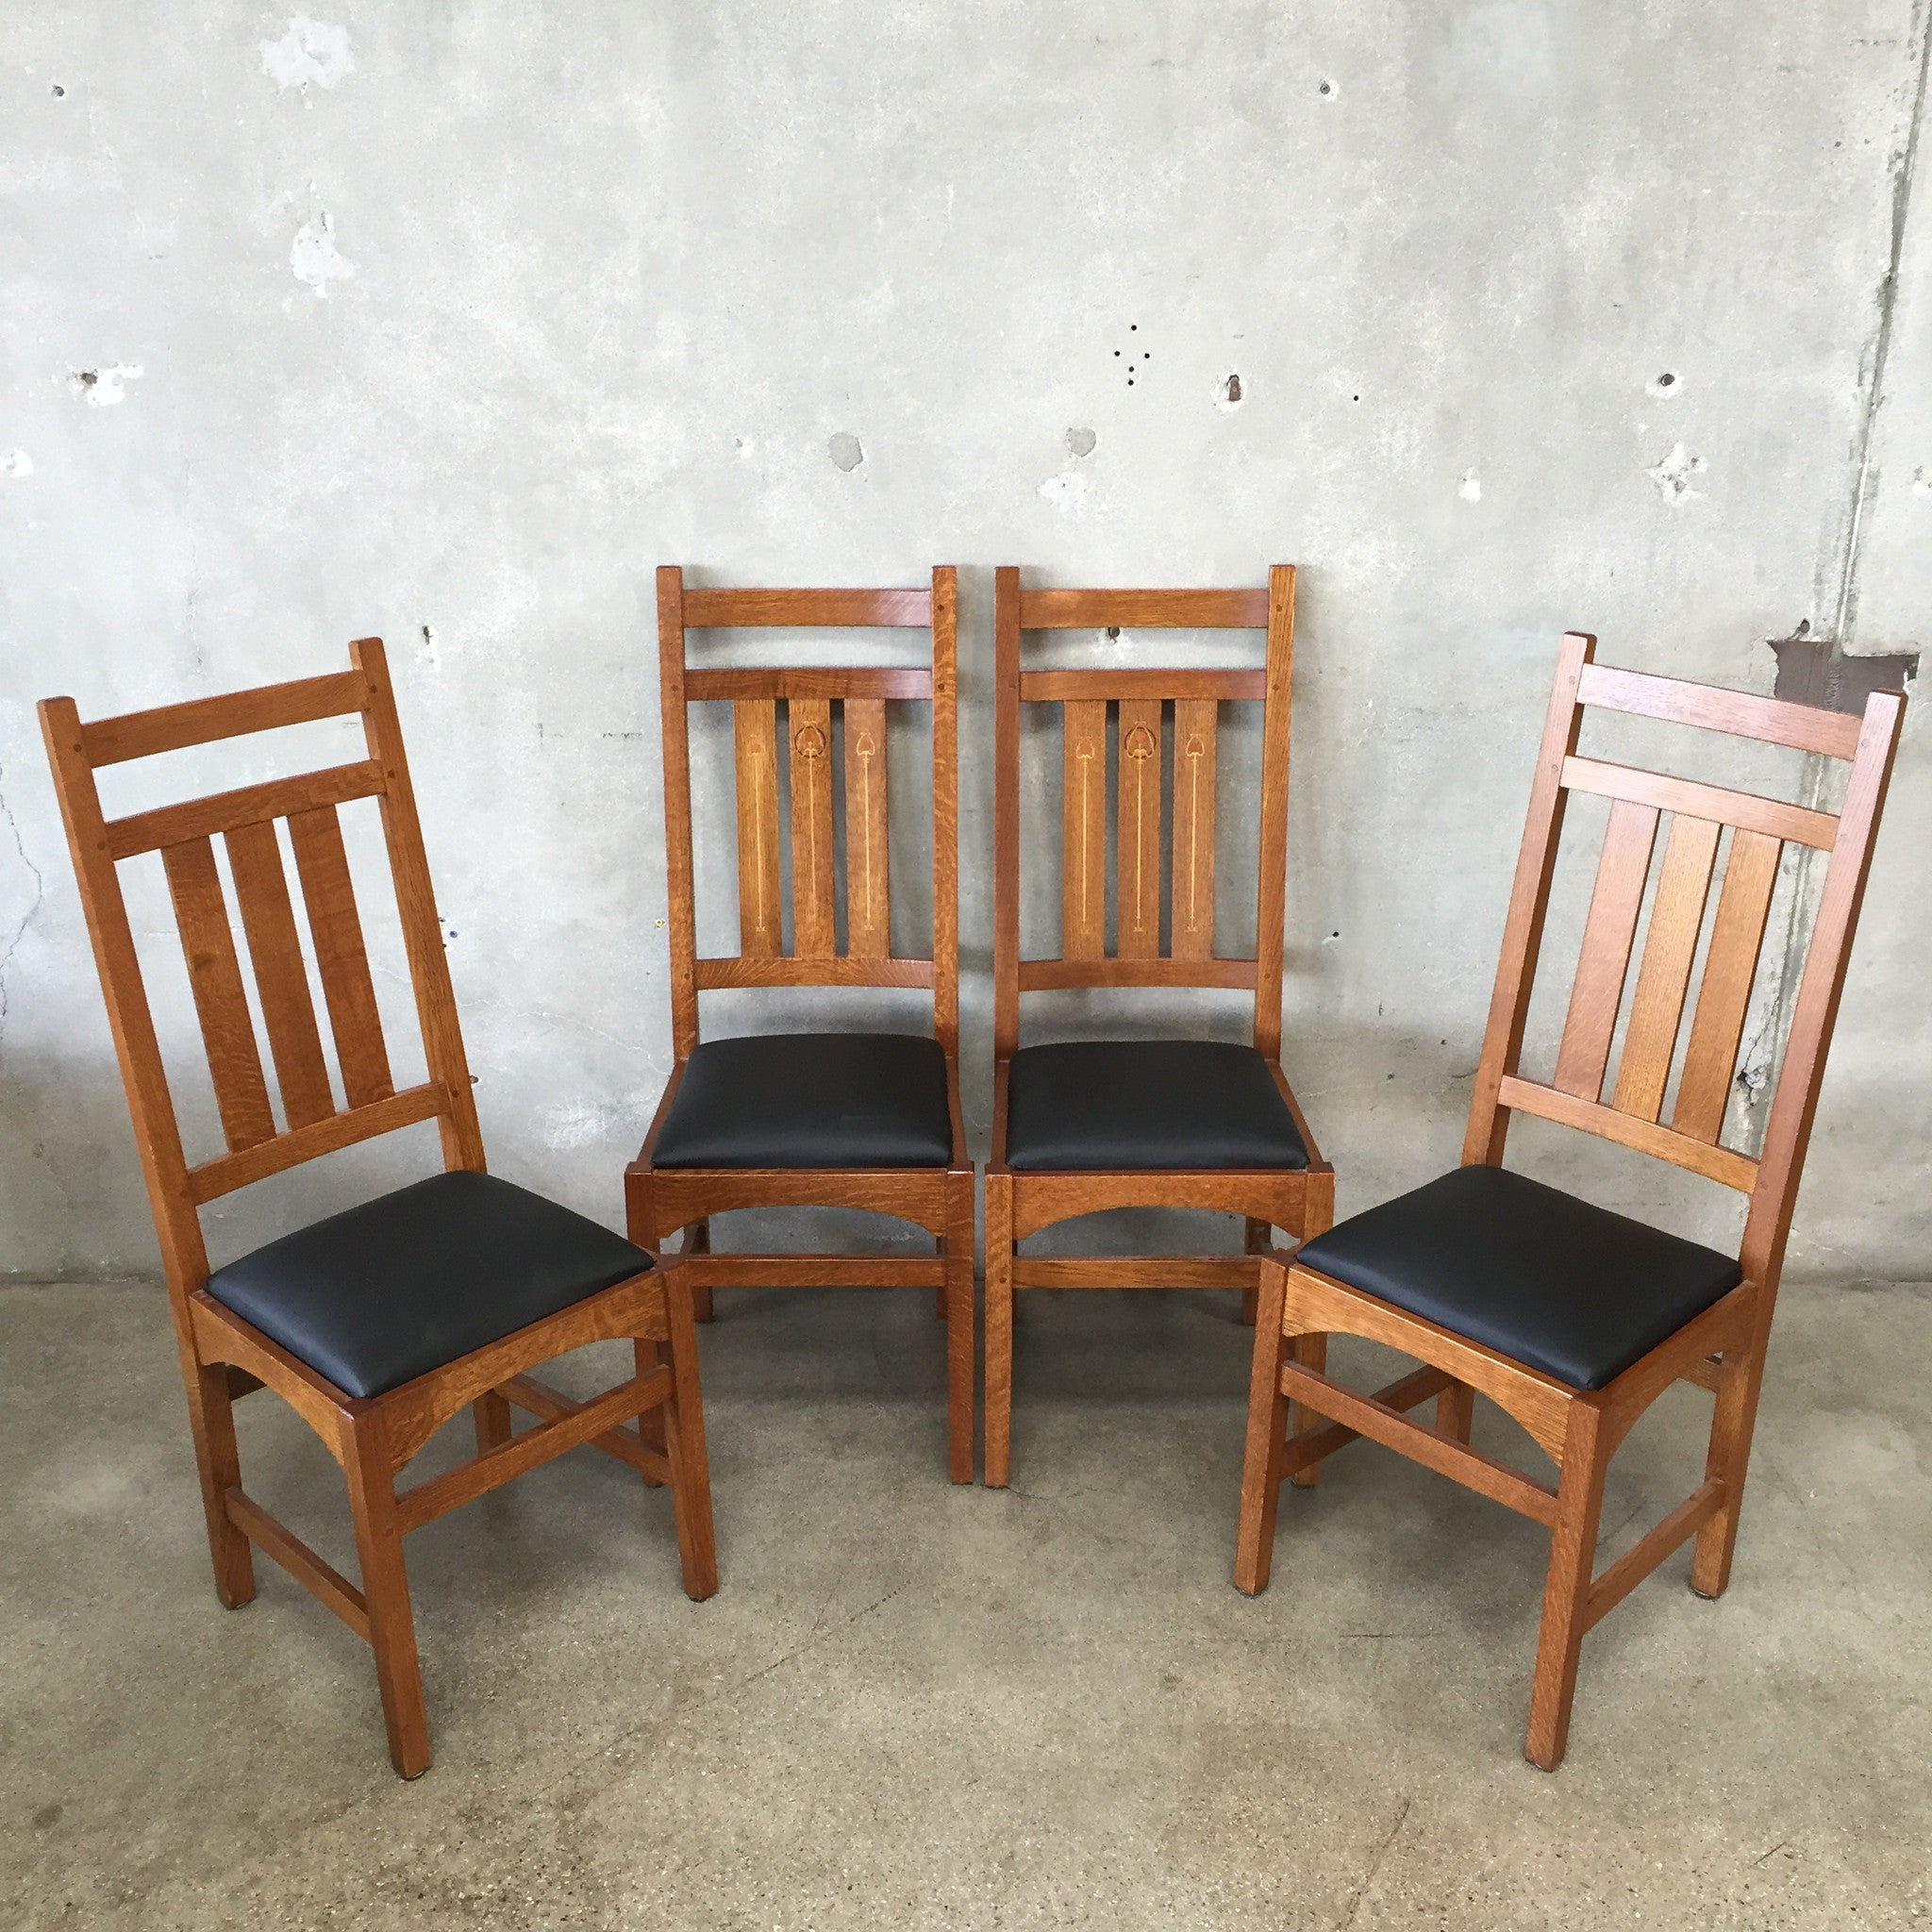 vintage stickley dining table chairs urbanamericana vintage stickley dining table chairs